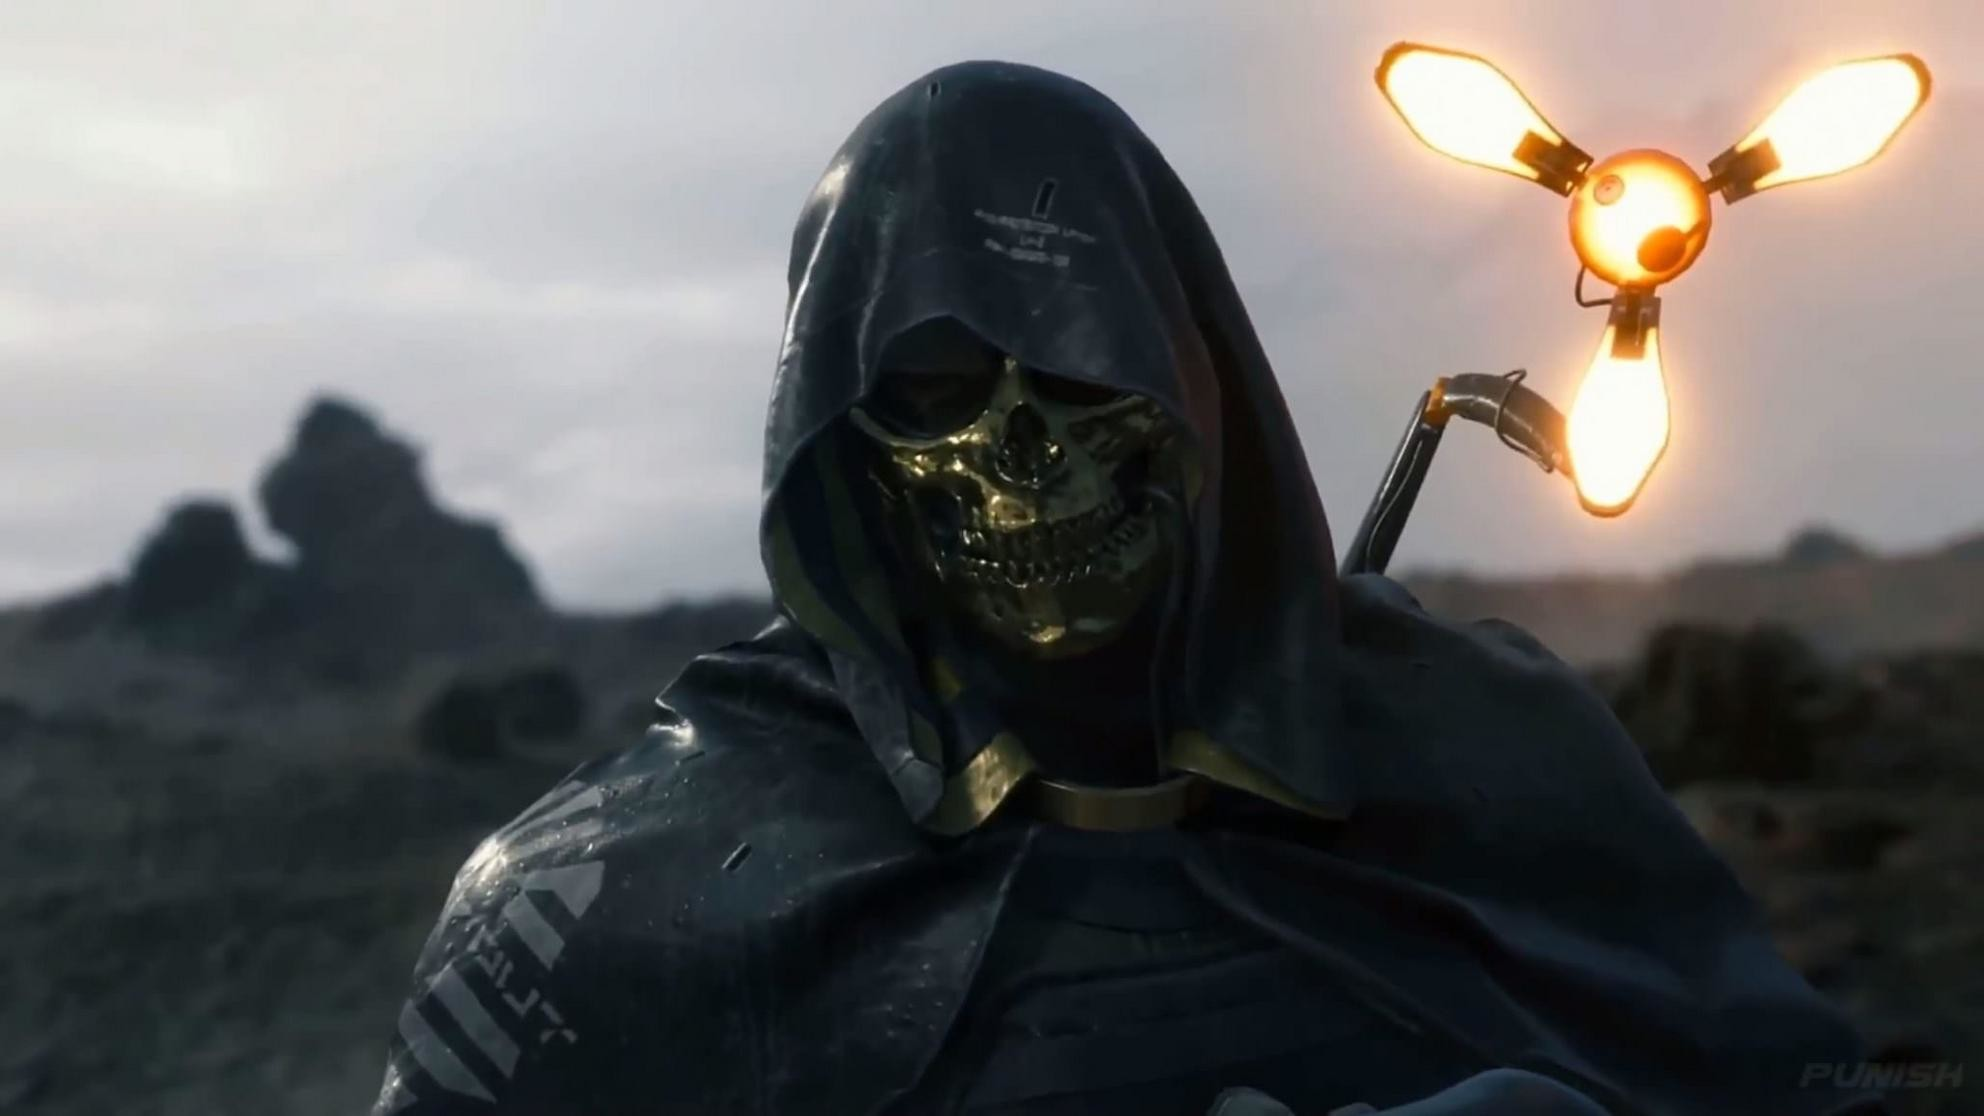 New Death Stranding Trailer is out